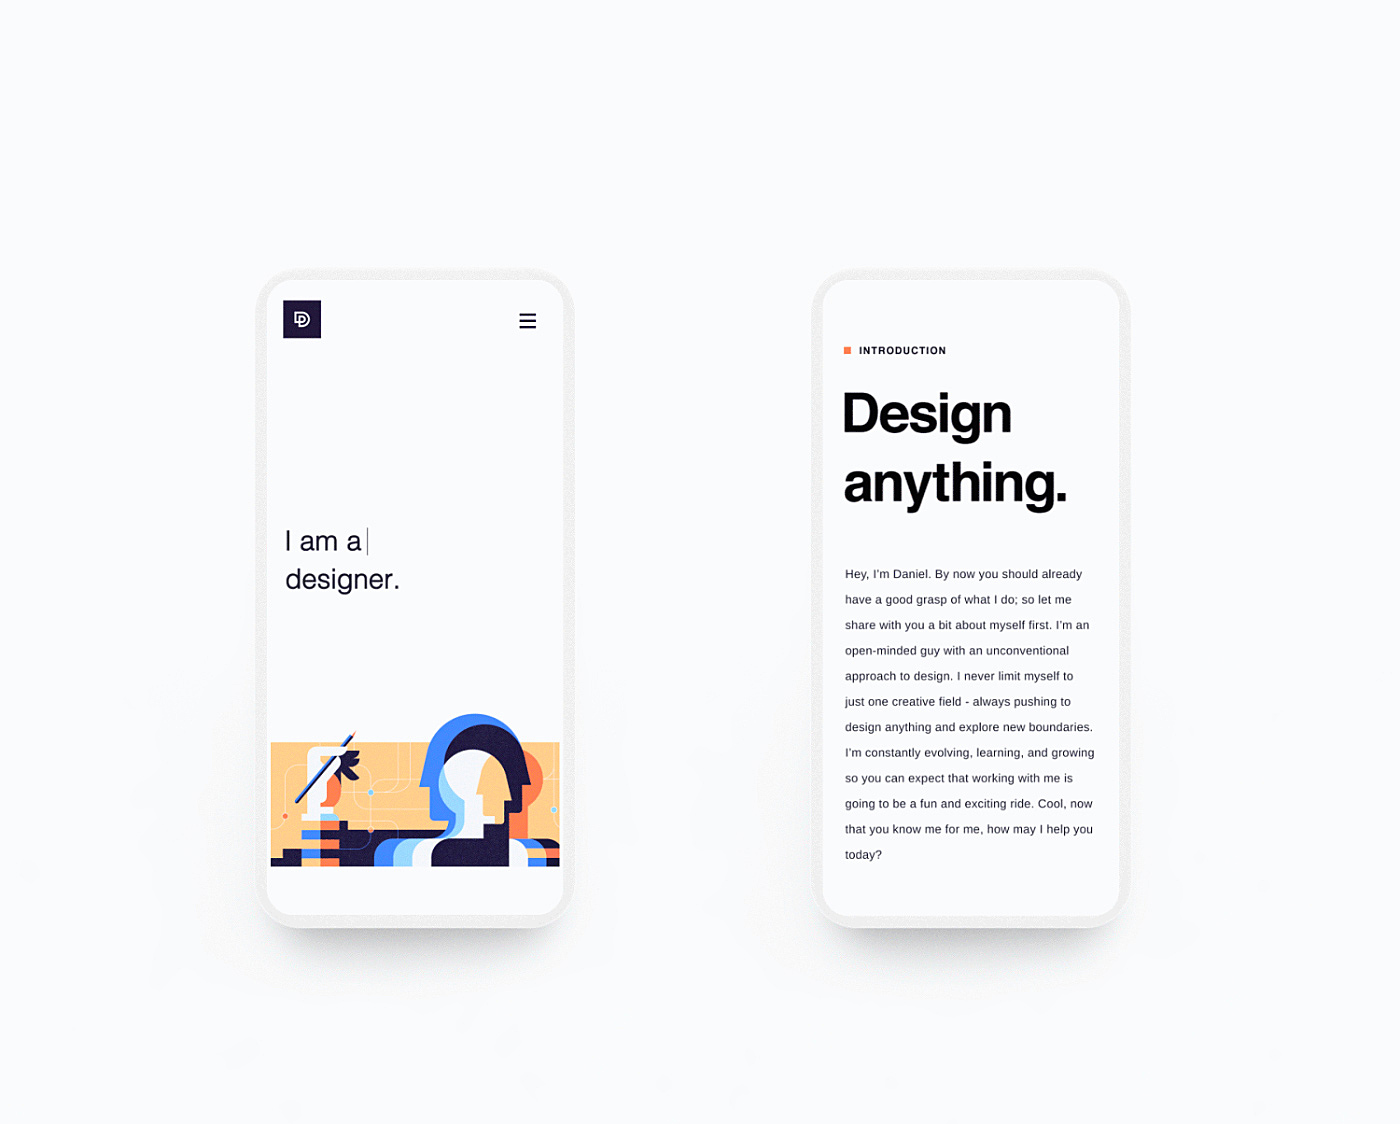 custom illustrations for mobile app